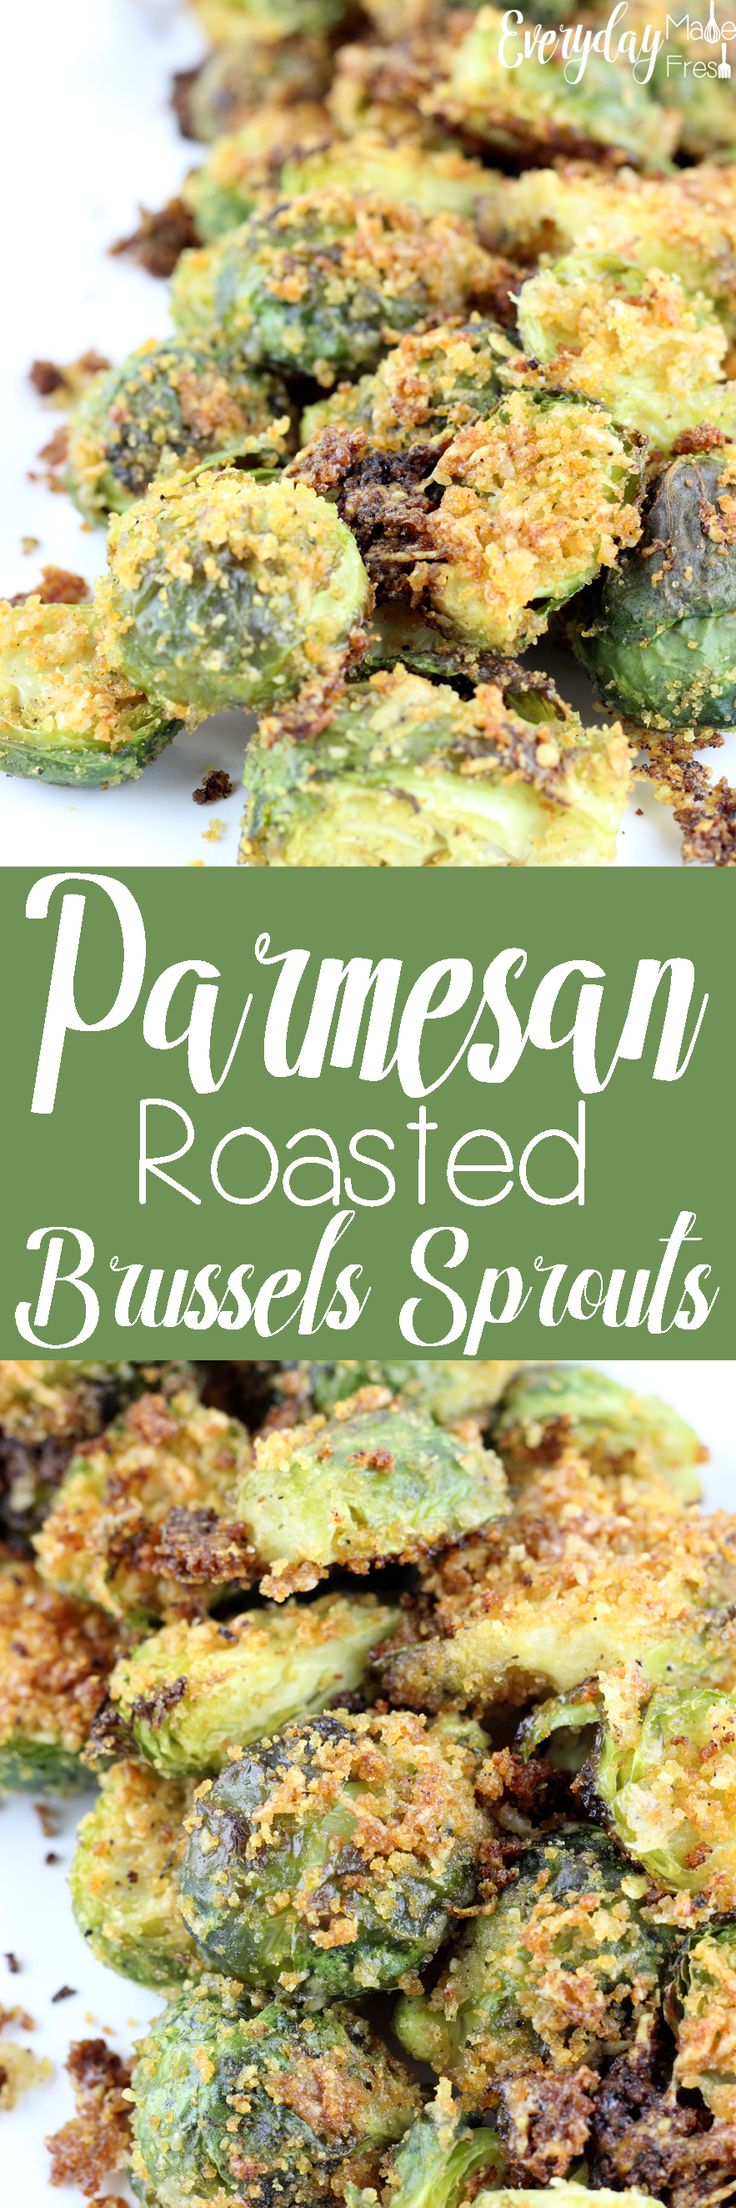 Parmesan Roasted Brussels Sprouts are perfect for the holiday table, yet easy enough for a weeknight side dish. | EverydayMadeFresh.com http://www.everydaymadefresh.com/parmesan-roasted-brussels-sprouts/